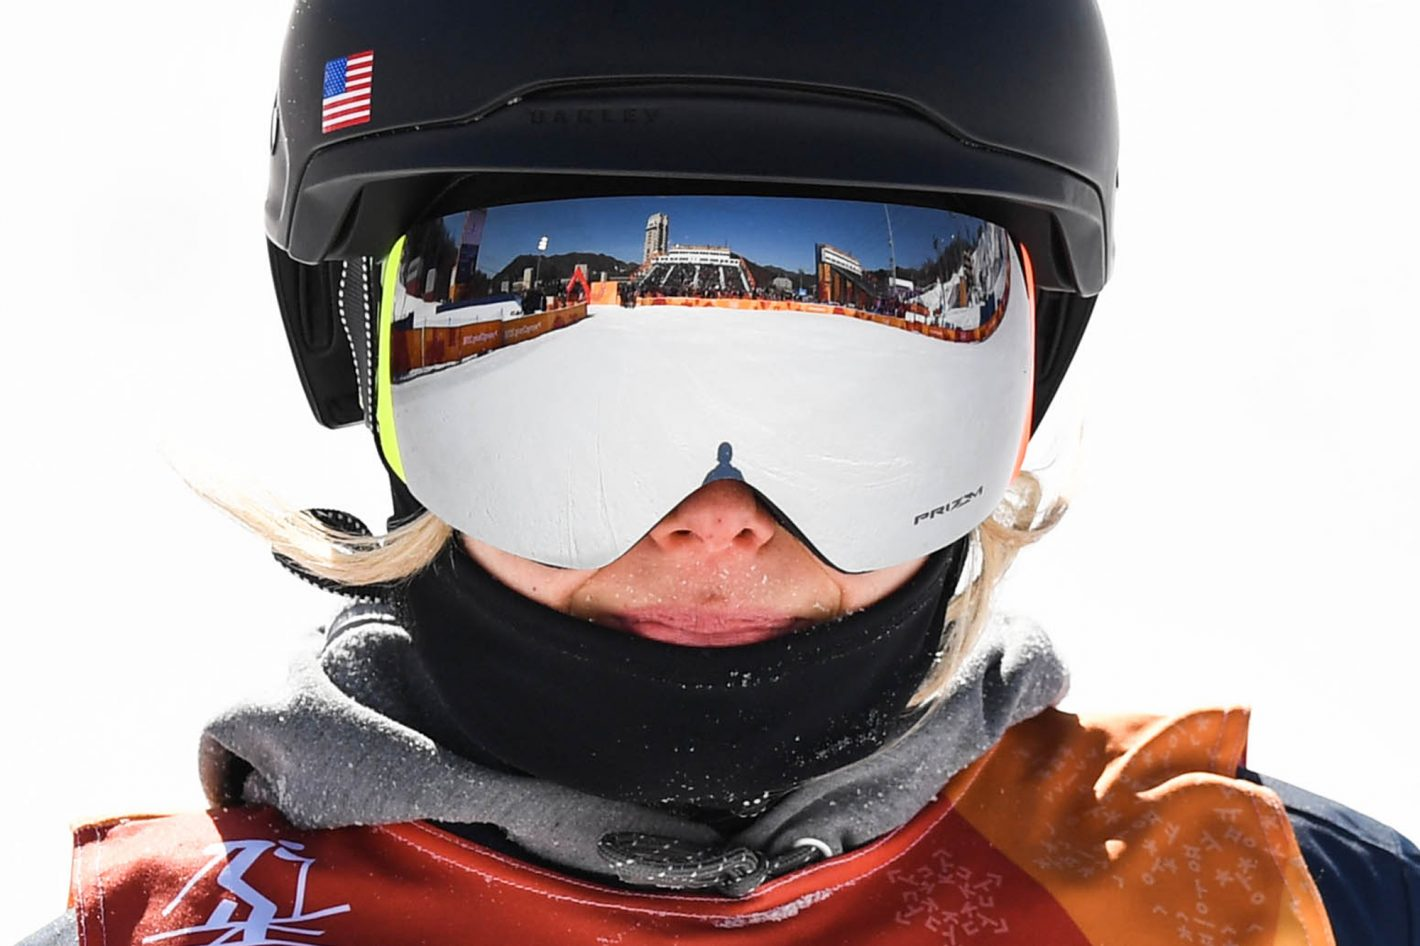 Maggie Voisin (USA) competes in ladies ski slopestyle final run 1 at Phoenix Snow Park during the PyeongChang 2018 Olympic Winter Games. Nikon D5 | AF-S NIKKOR 600mm f/4E FL ED VR | ISO 280 | 1/2000 s | f/5.6 Photo by Kyle Terada/USA TODAY Sports